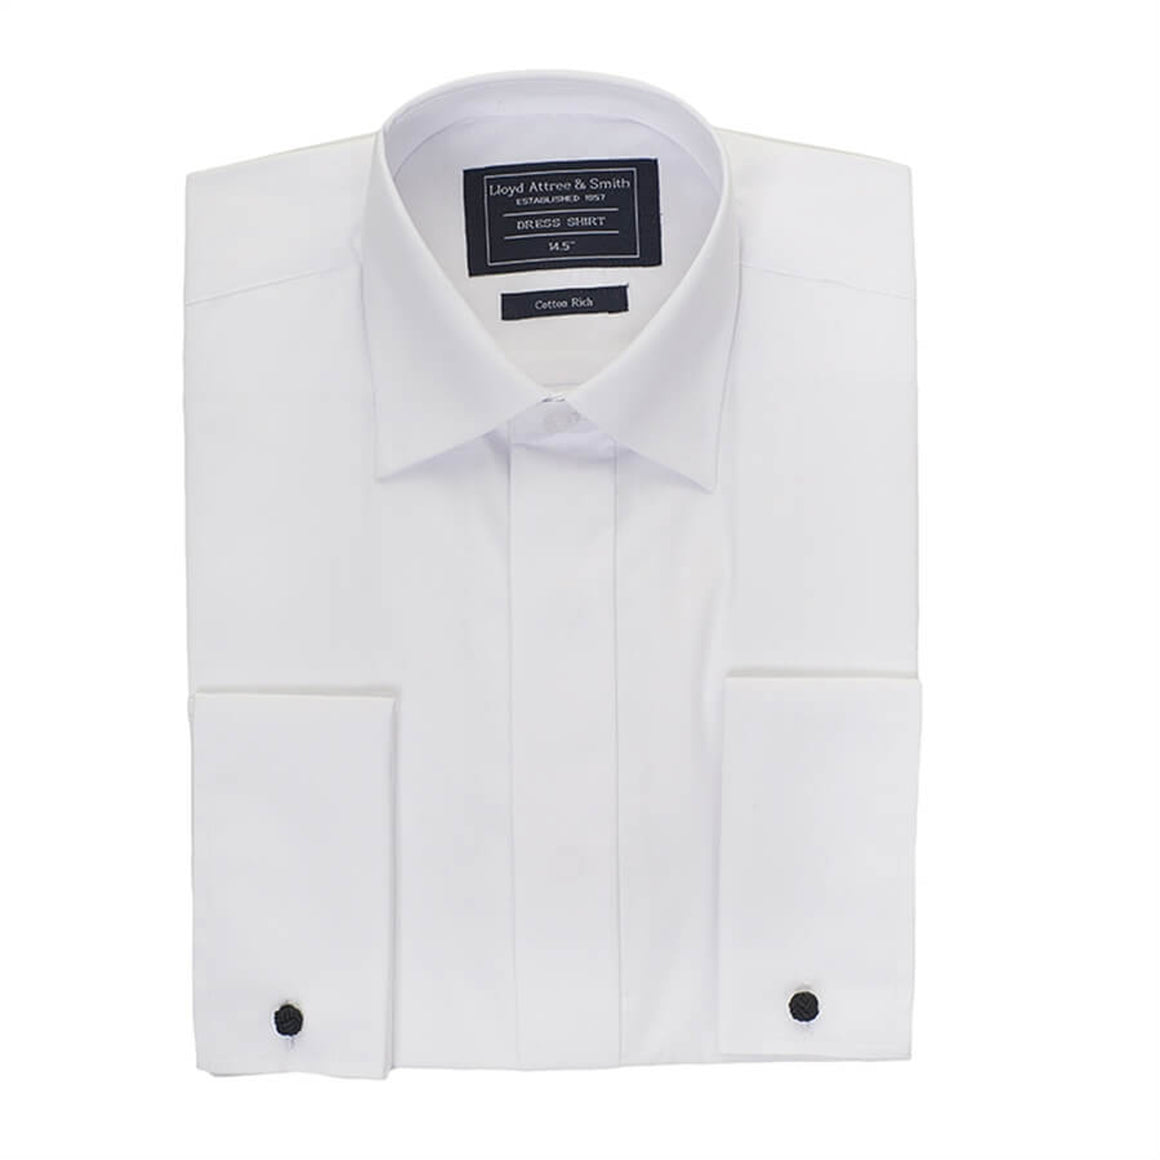 Plain Standard Collar Dress Shirt for Men in White X-Long Length